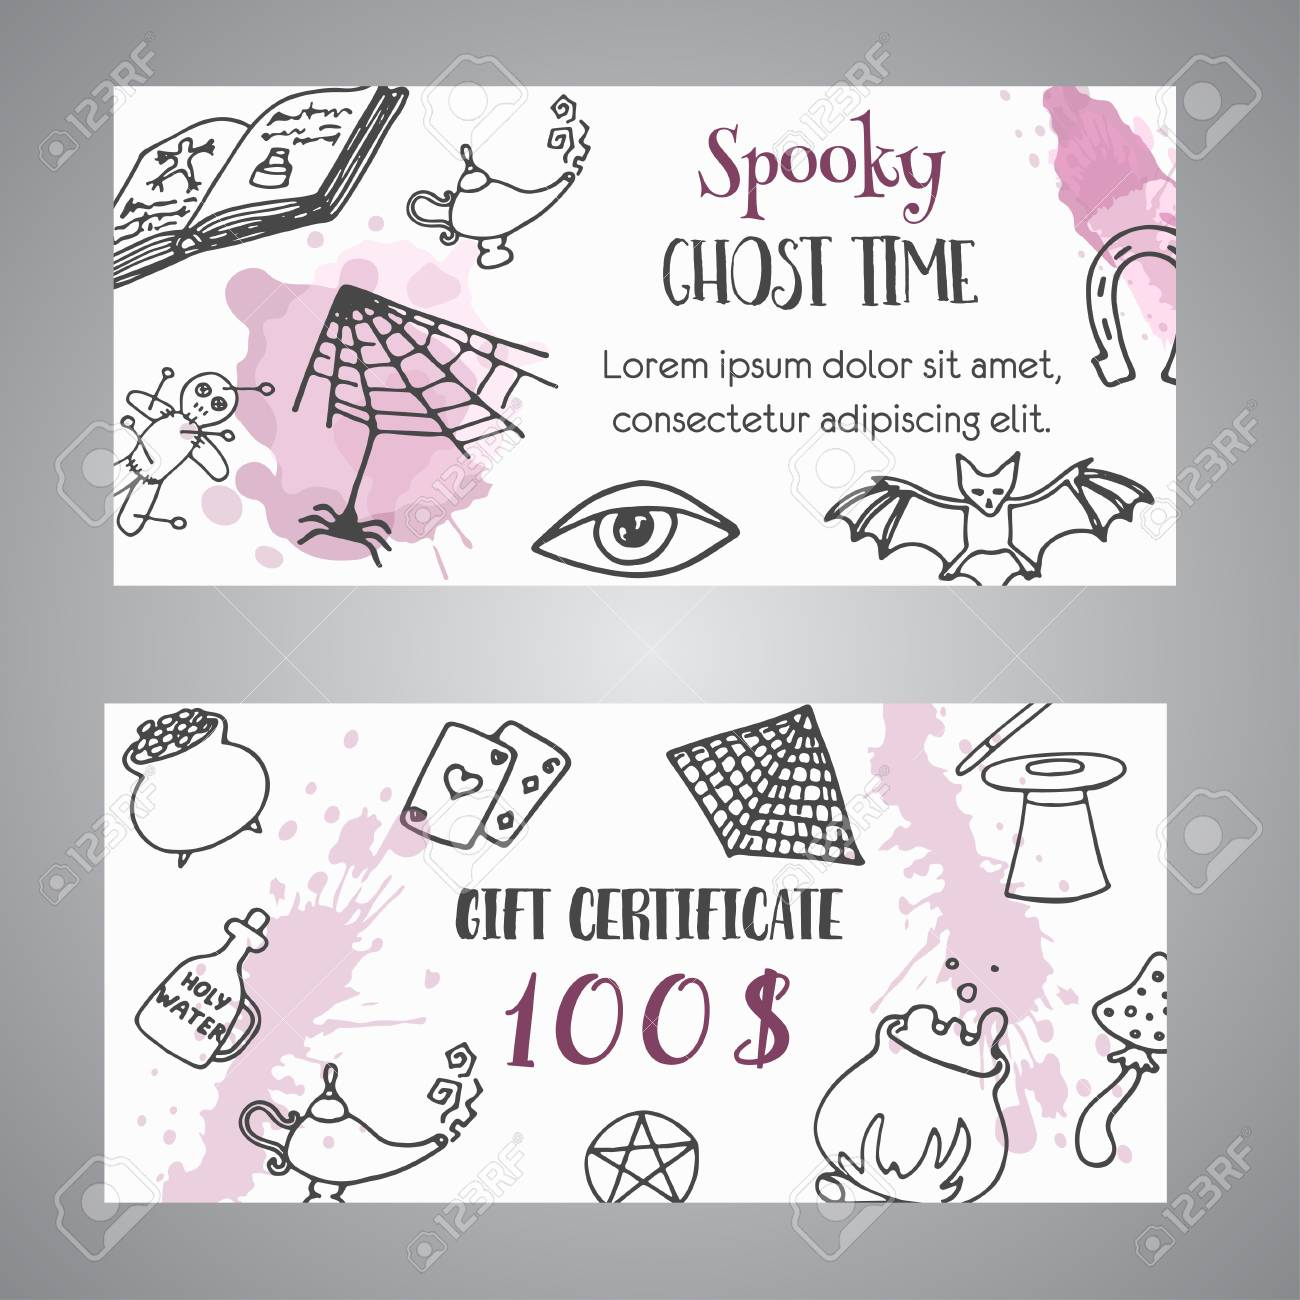 hand drawn halloween banner free voucher template. ghost time